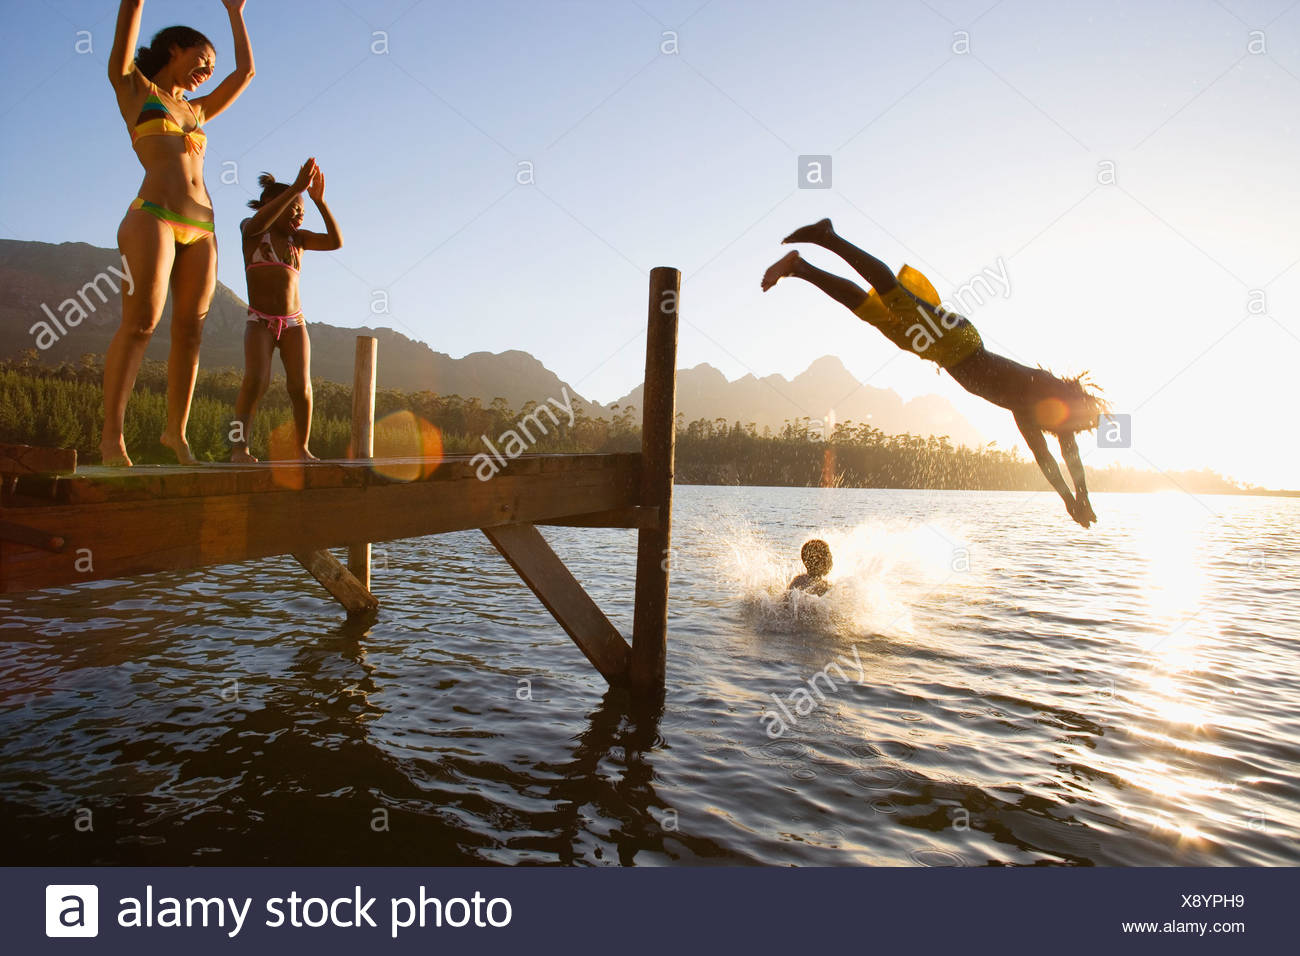 Father and son 8 10 in swimwear diving off jetty into lake at sunset mother and daughter 7 9 cheering lens flare - Stock Image